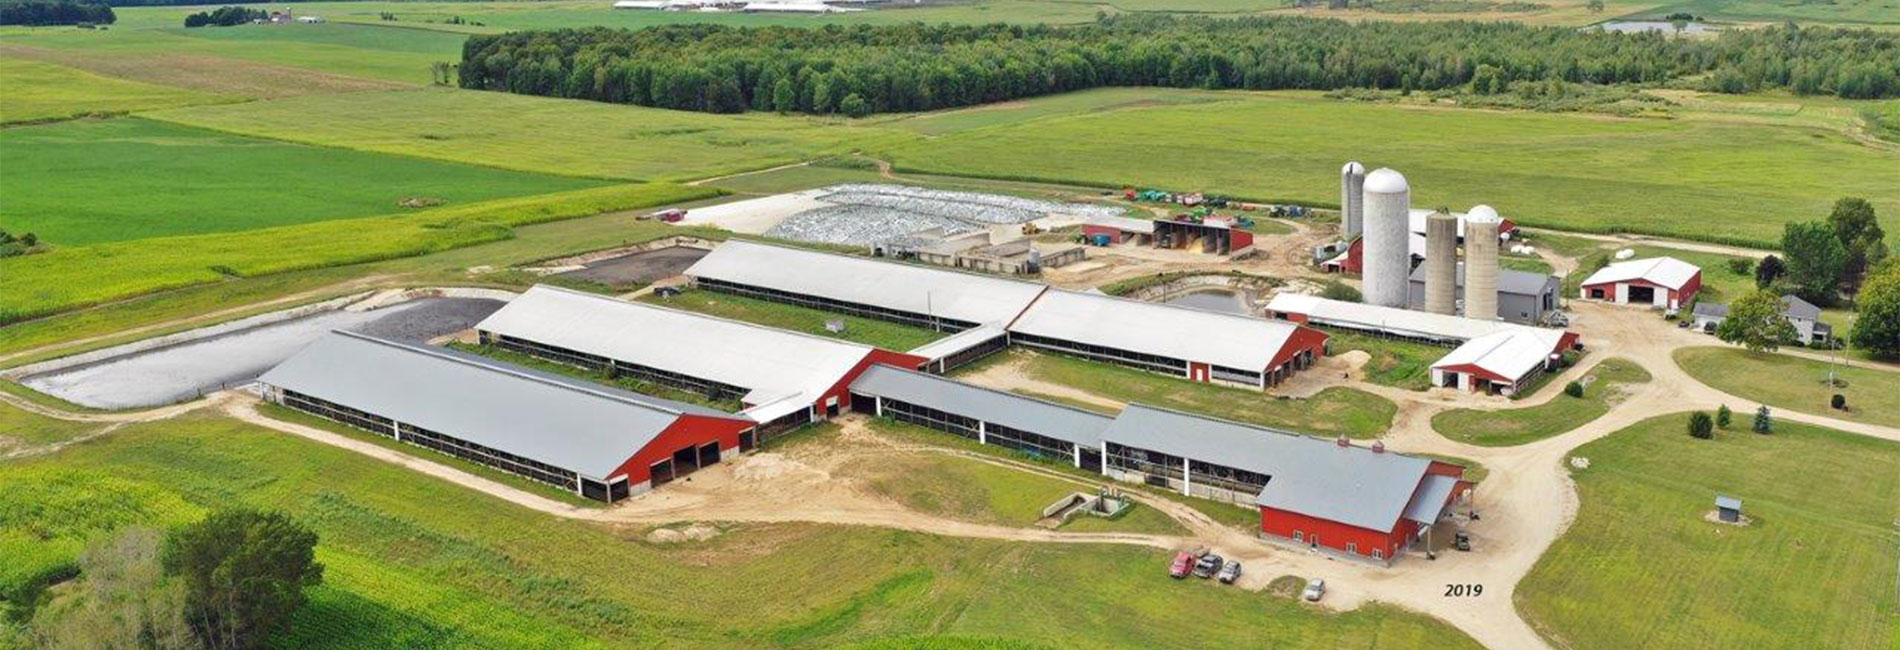 Agricultural Buildings, Parlors, Livestock, Machine Sheds and pole shed barns